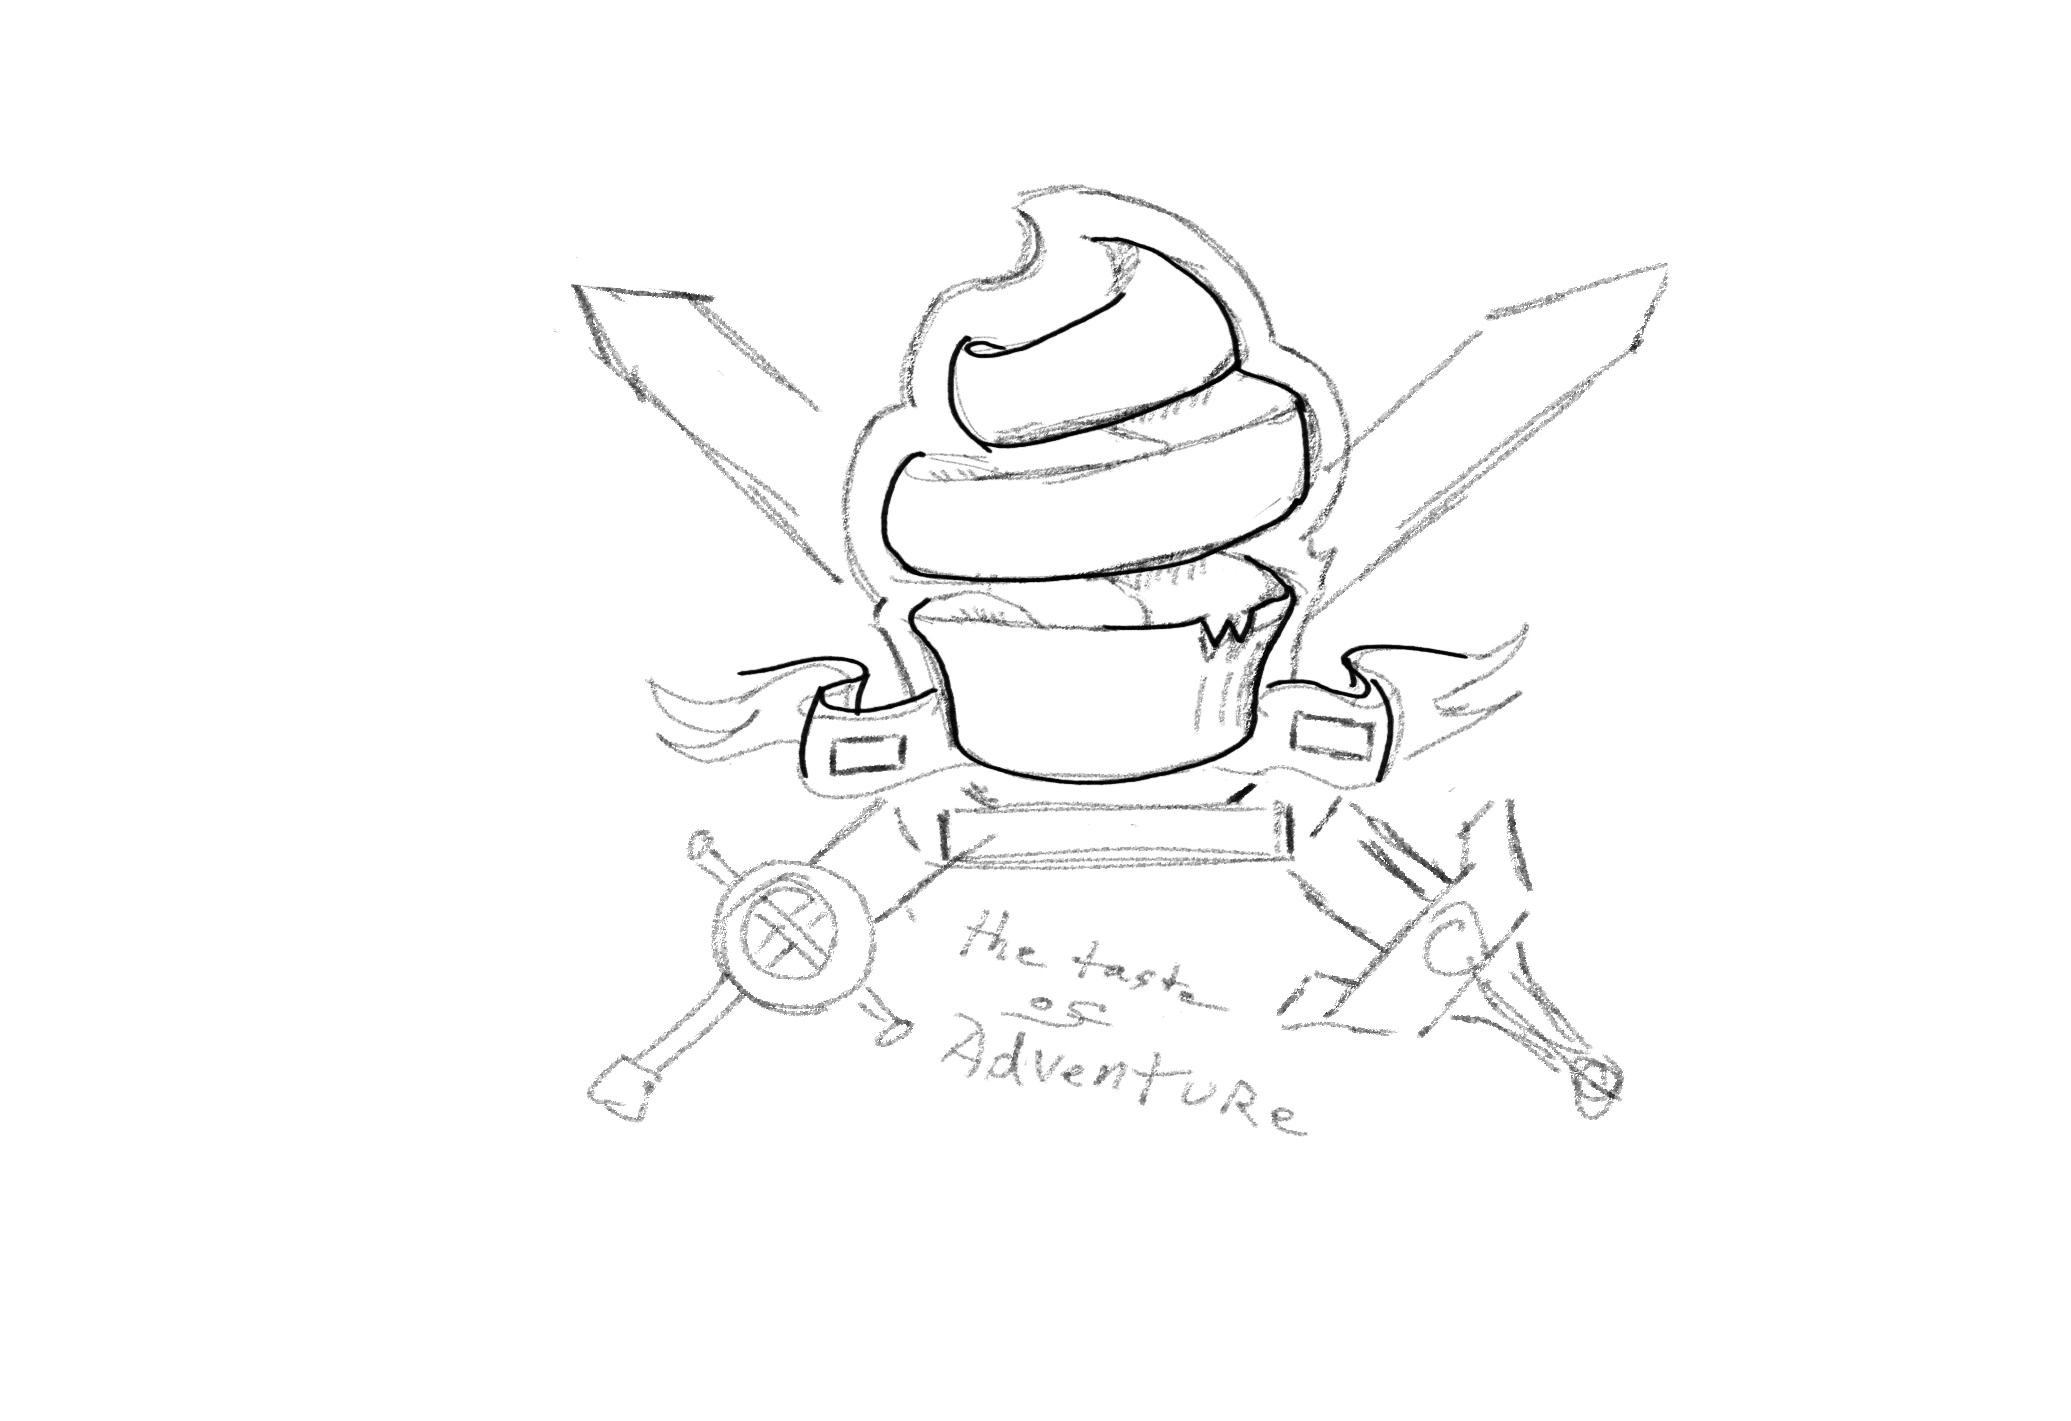 Adventure Cupcakes - image 8 - student project